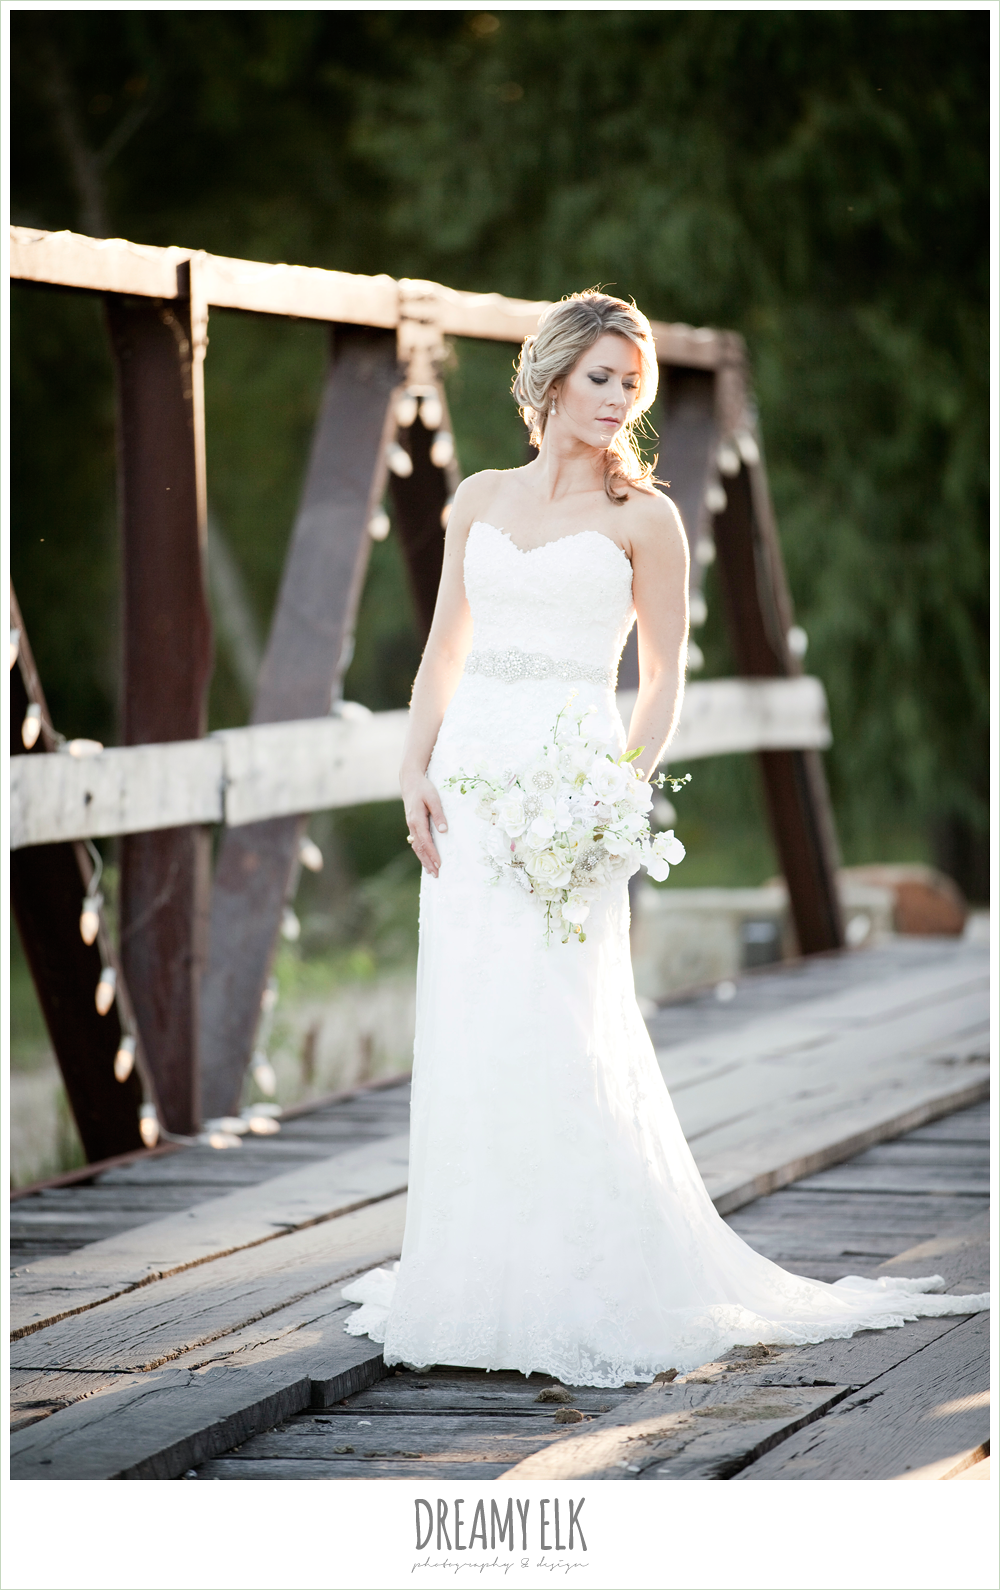 lauren, rock lake ranch, fall bridal photos, dreamy elk photography and design